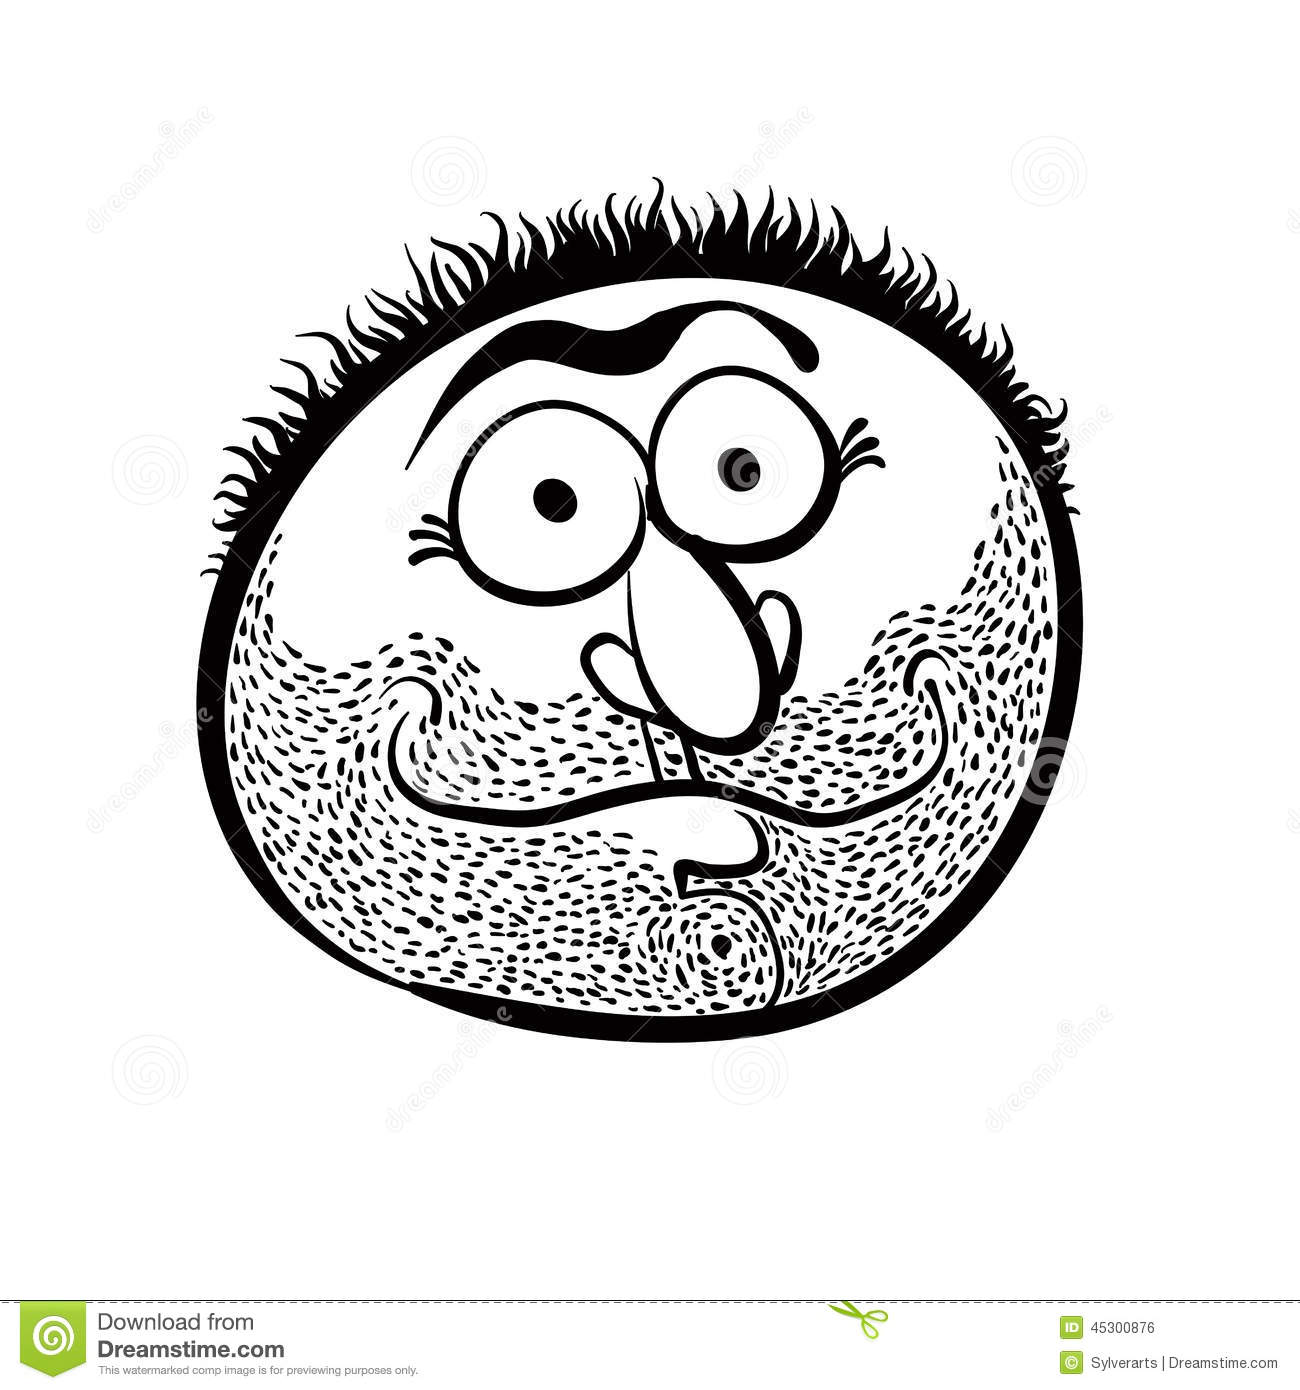 Funny Cartoon Face With Stubble, Black And White Stock Vector.